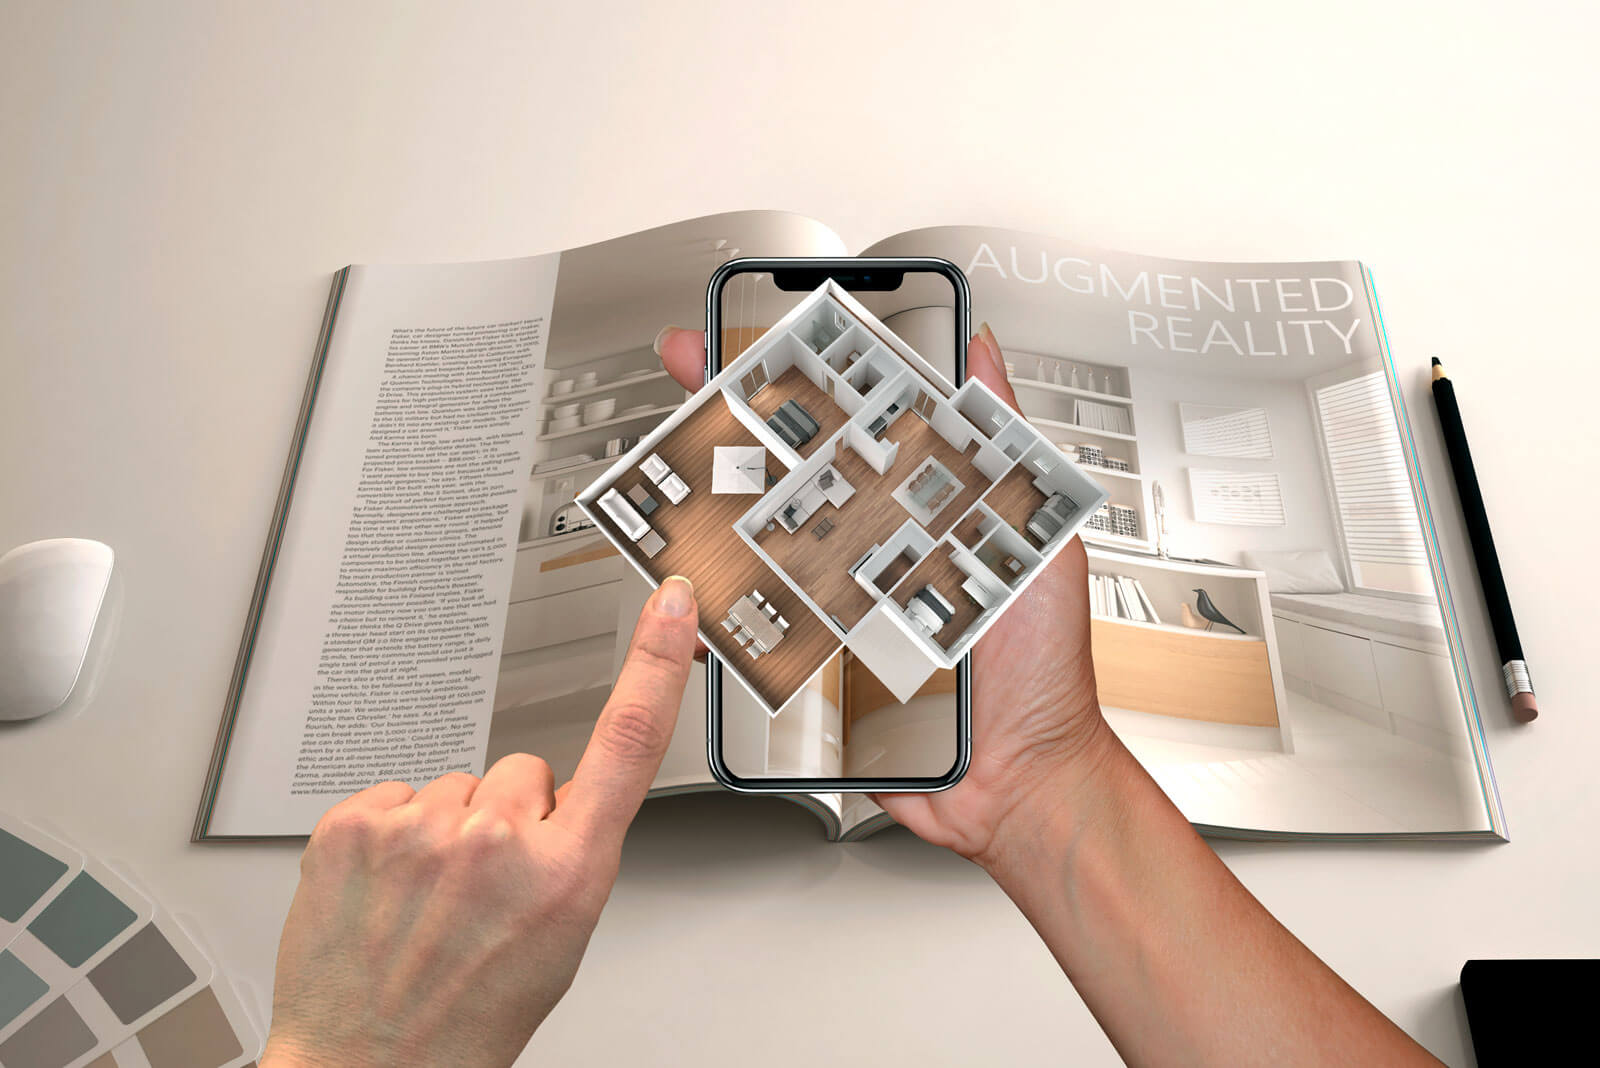 Additional information through Augmented Reality in a magazine